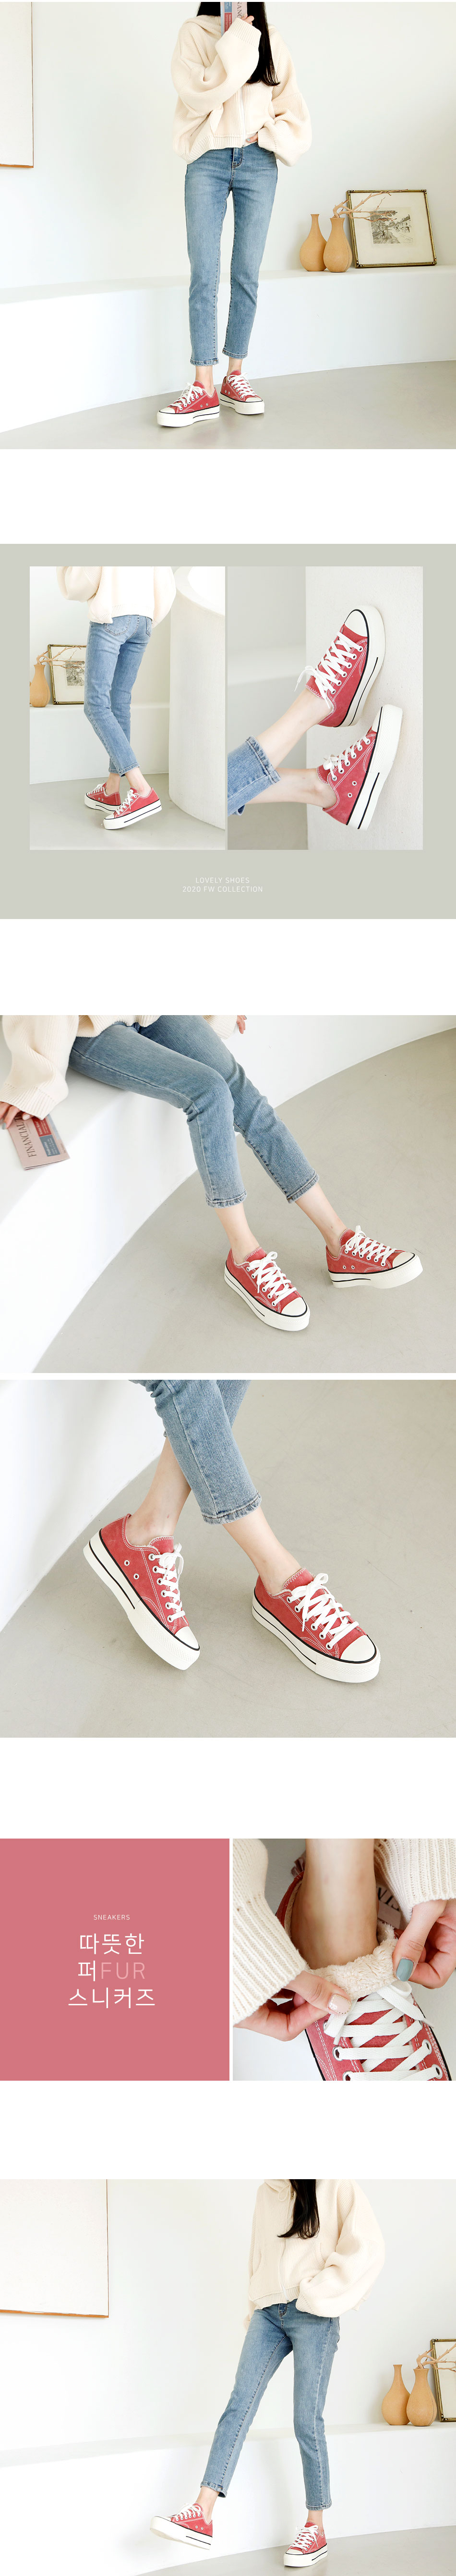 Cheev fur full-heeled sneakers 4cm